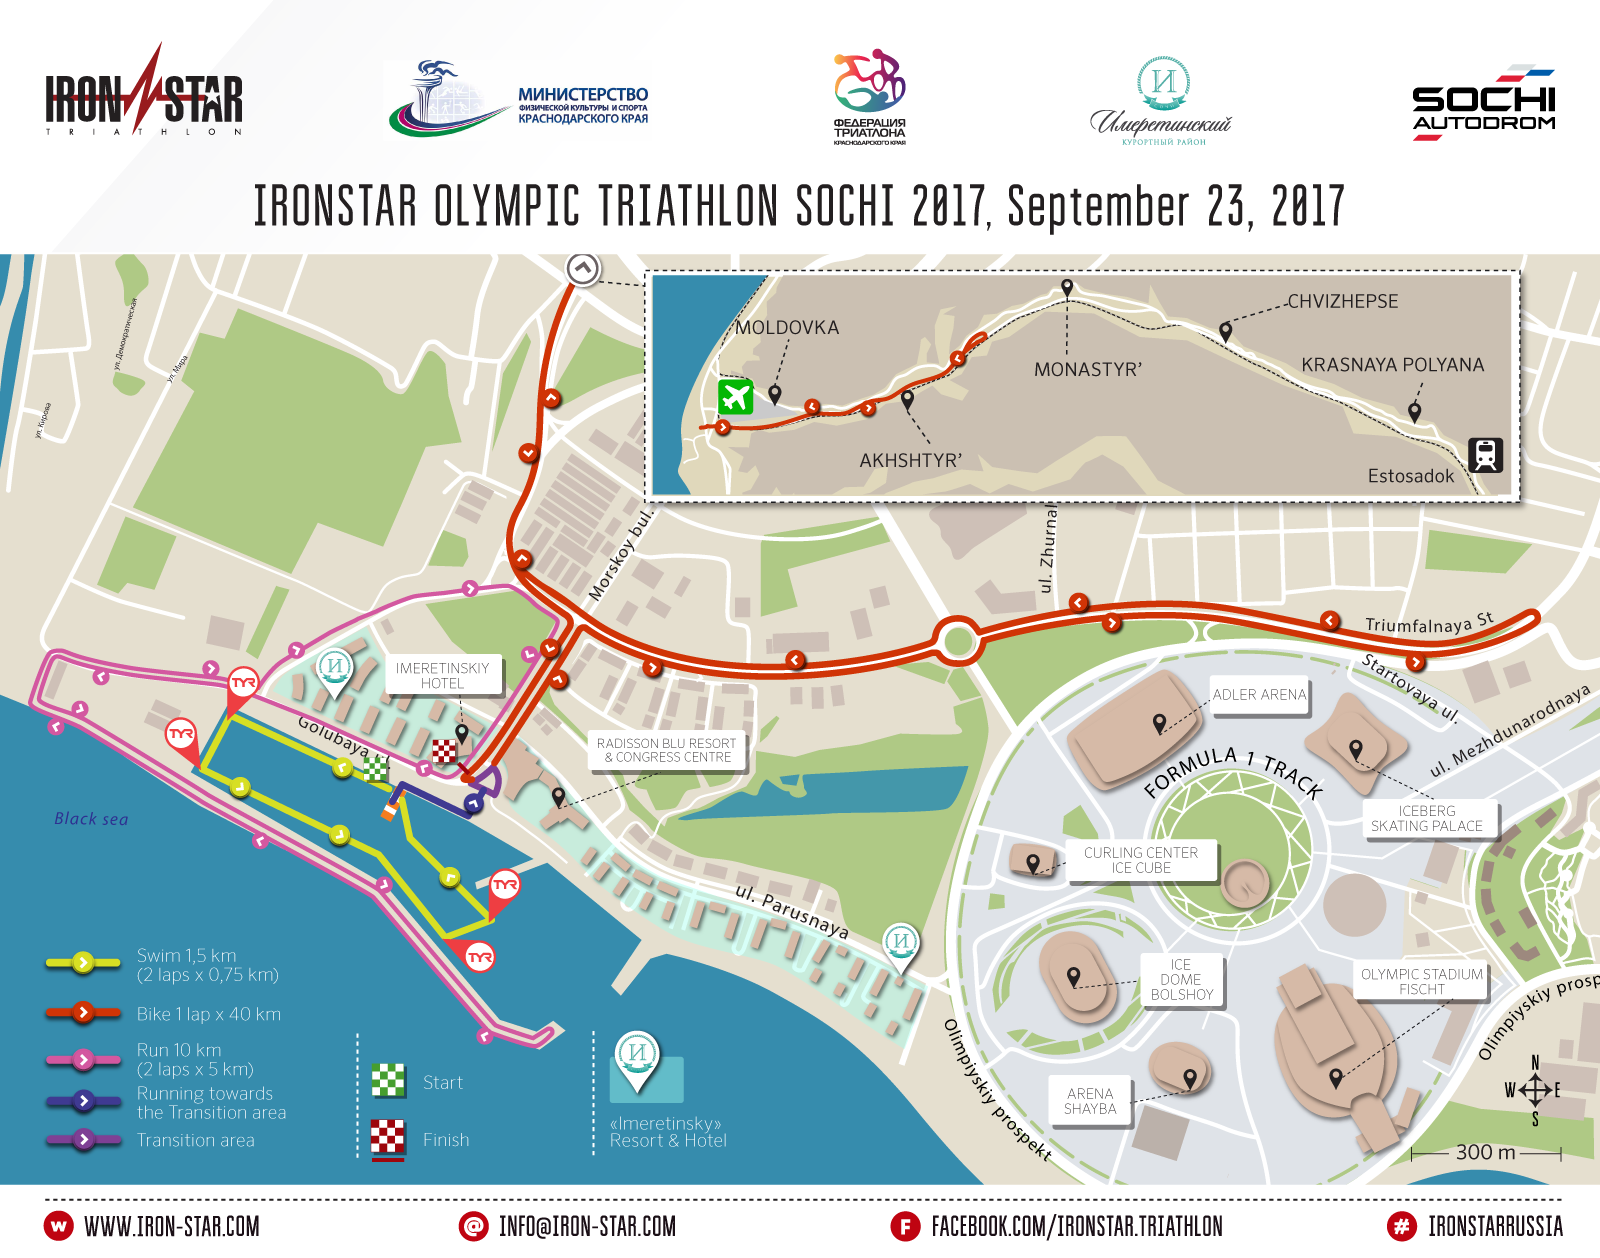 Route of IRONSTAR OLYMPIC SOCHI 2017